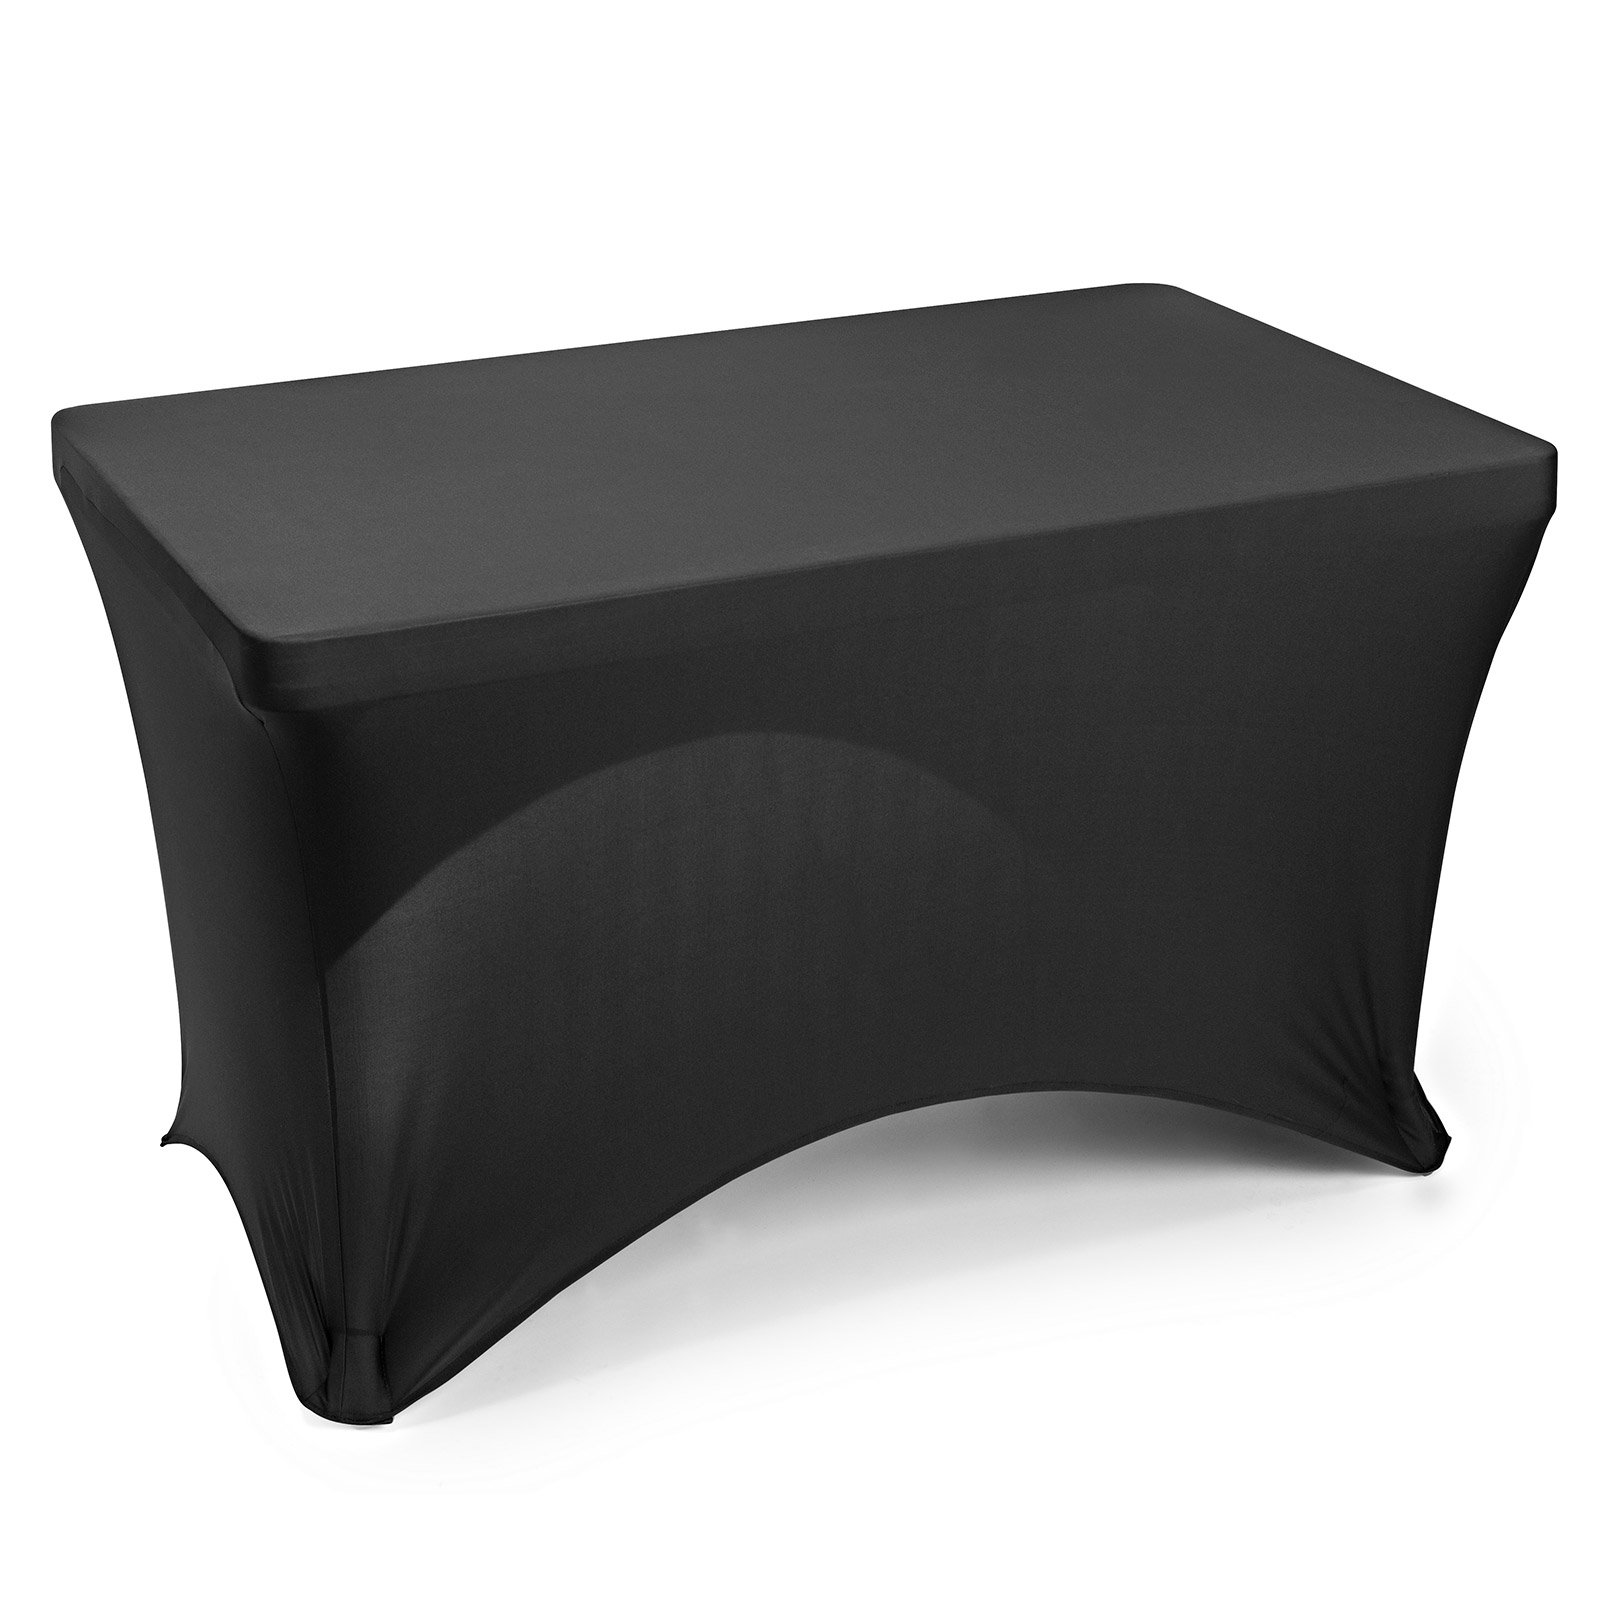 Lann's Linens - 4' Fitted Stretch Tablecloth for 48'' x 24'' Rectangular Table - Wedding/Banquet/Trade Show - Spandex Cloth Fabric Cover - Black